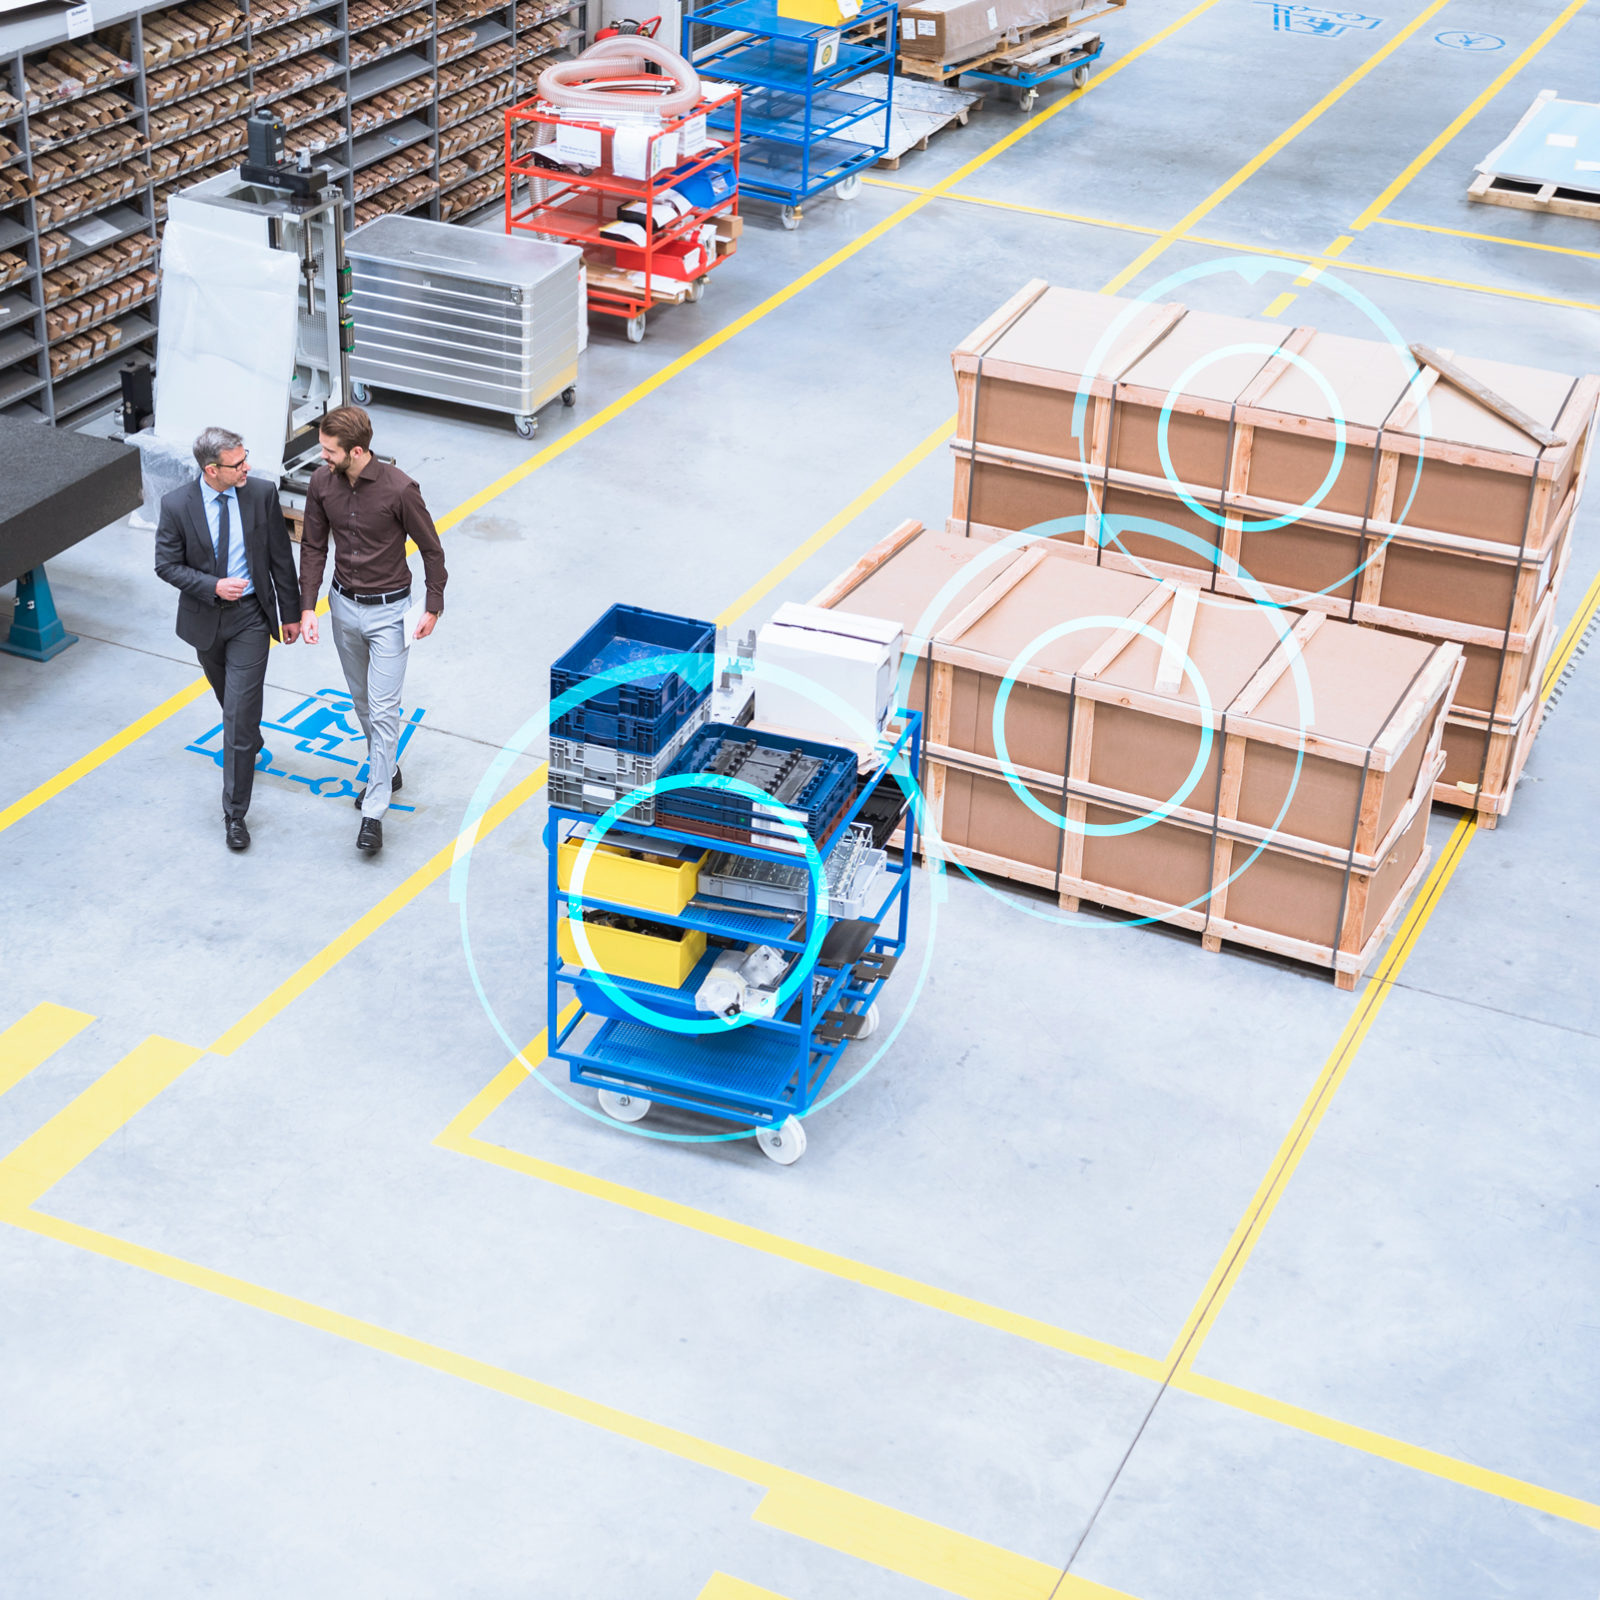 High angle view of supervisor and manager walking through distribution warehouse